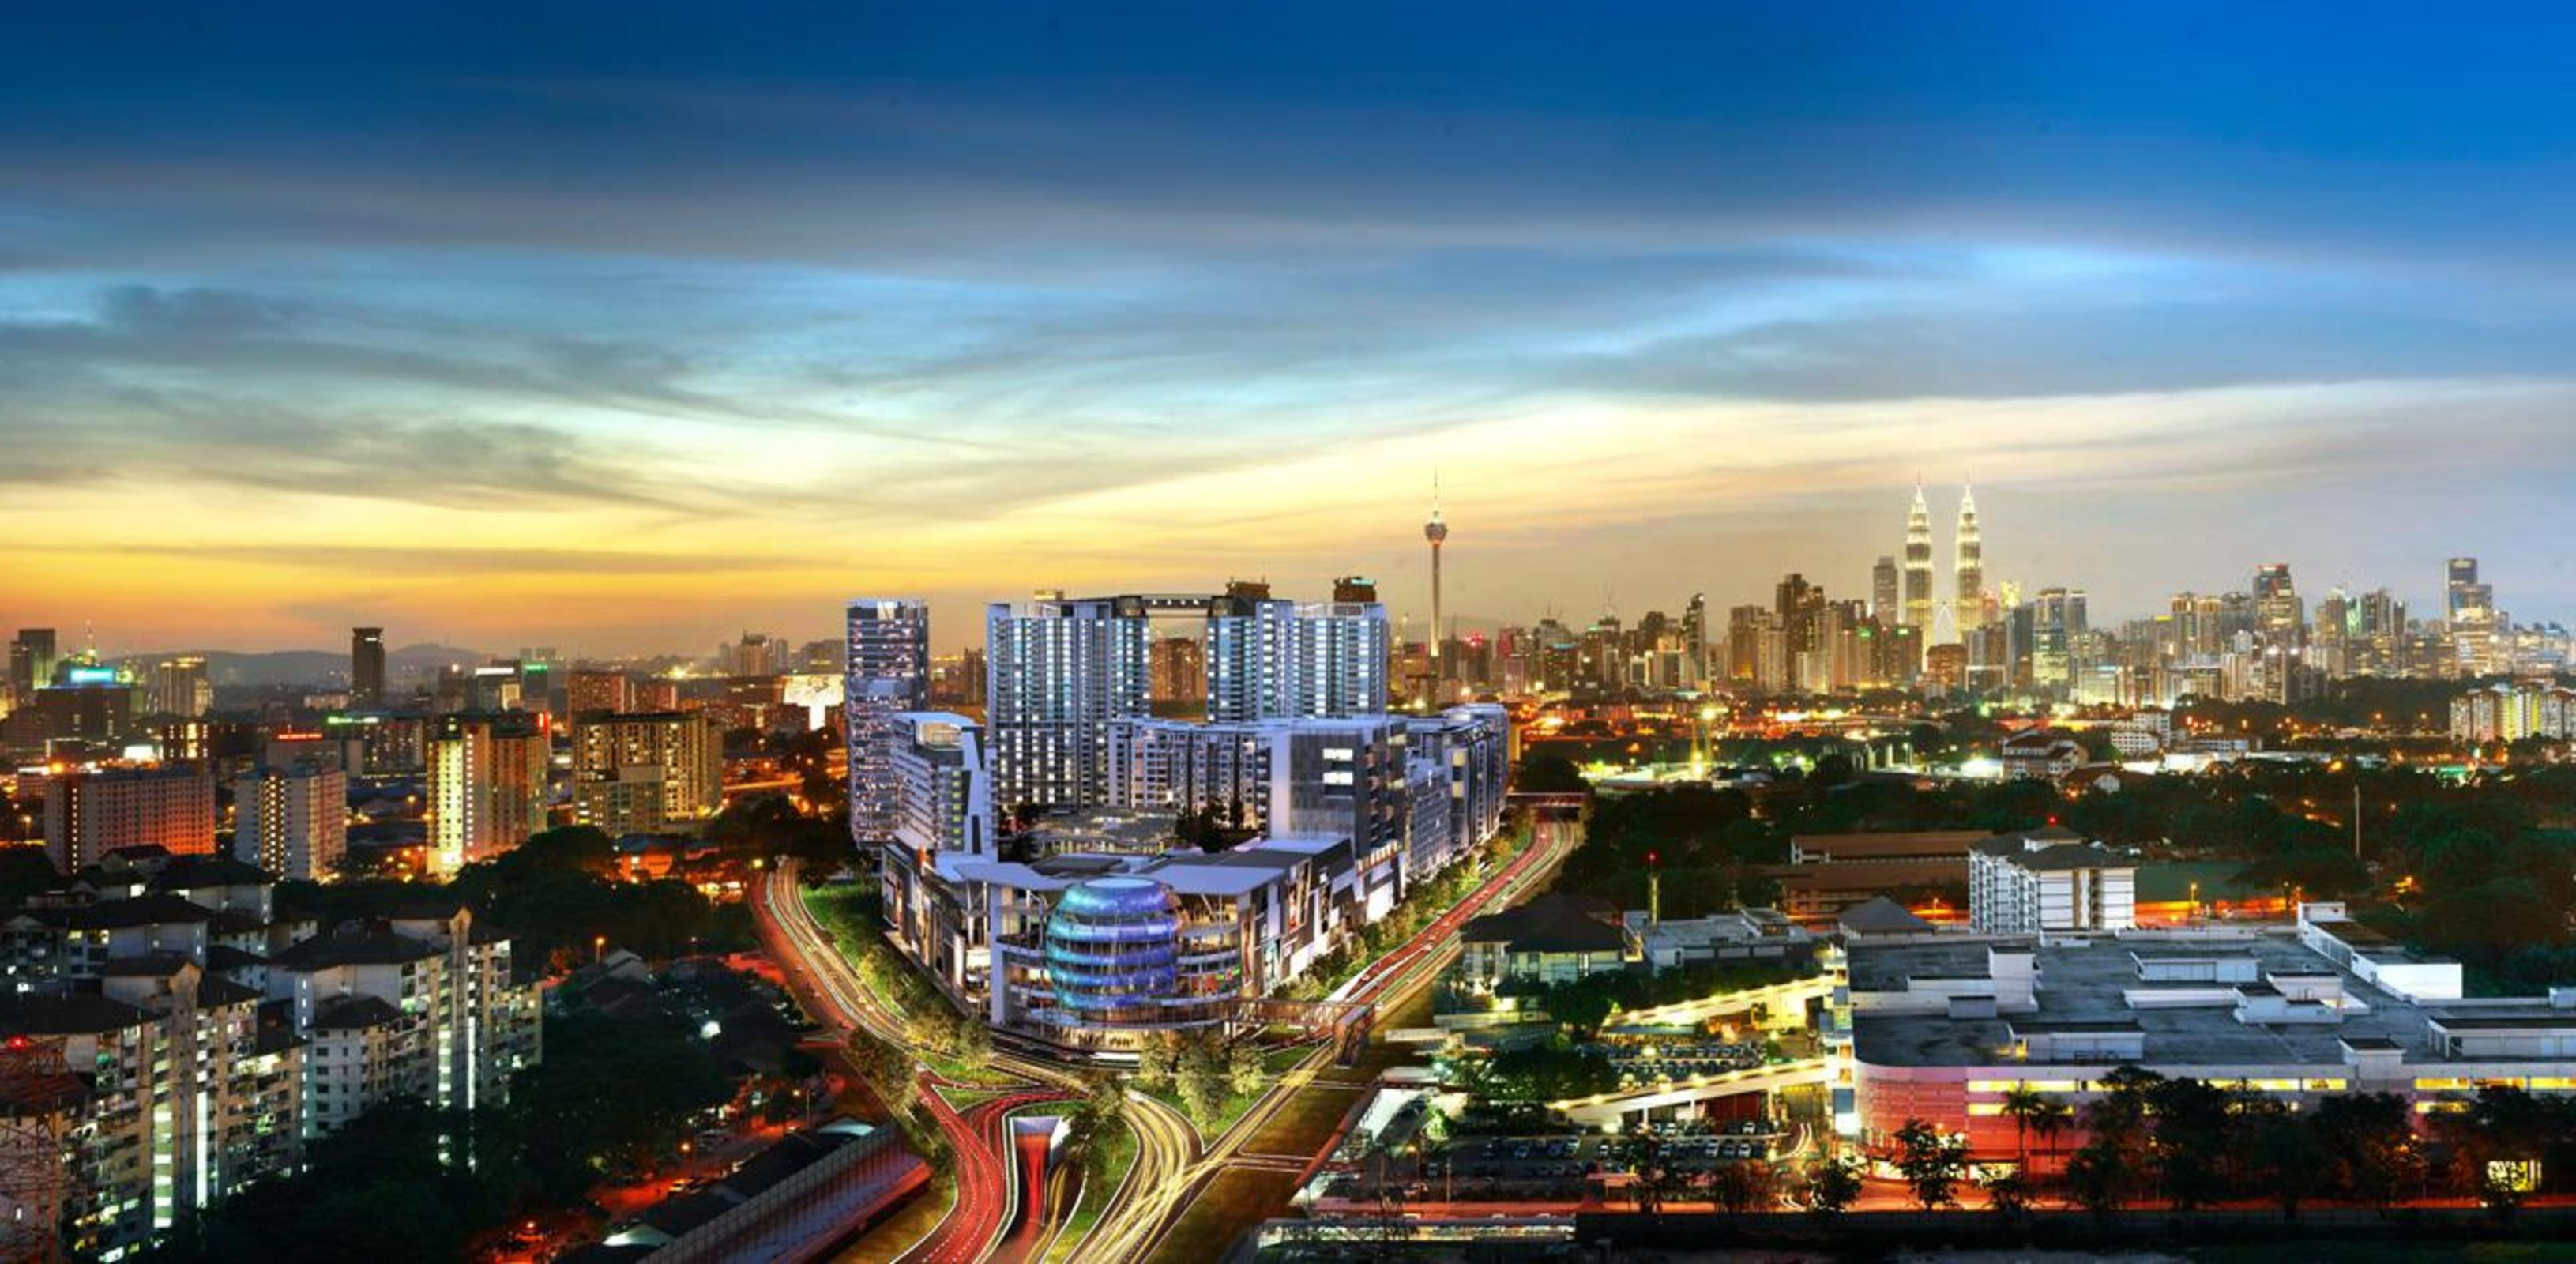 Sunway velocity klang valley concept 1 image 1280x628